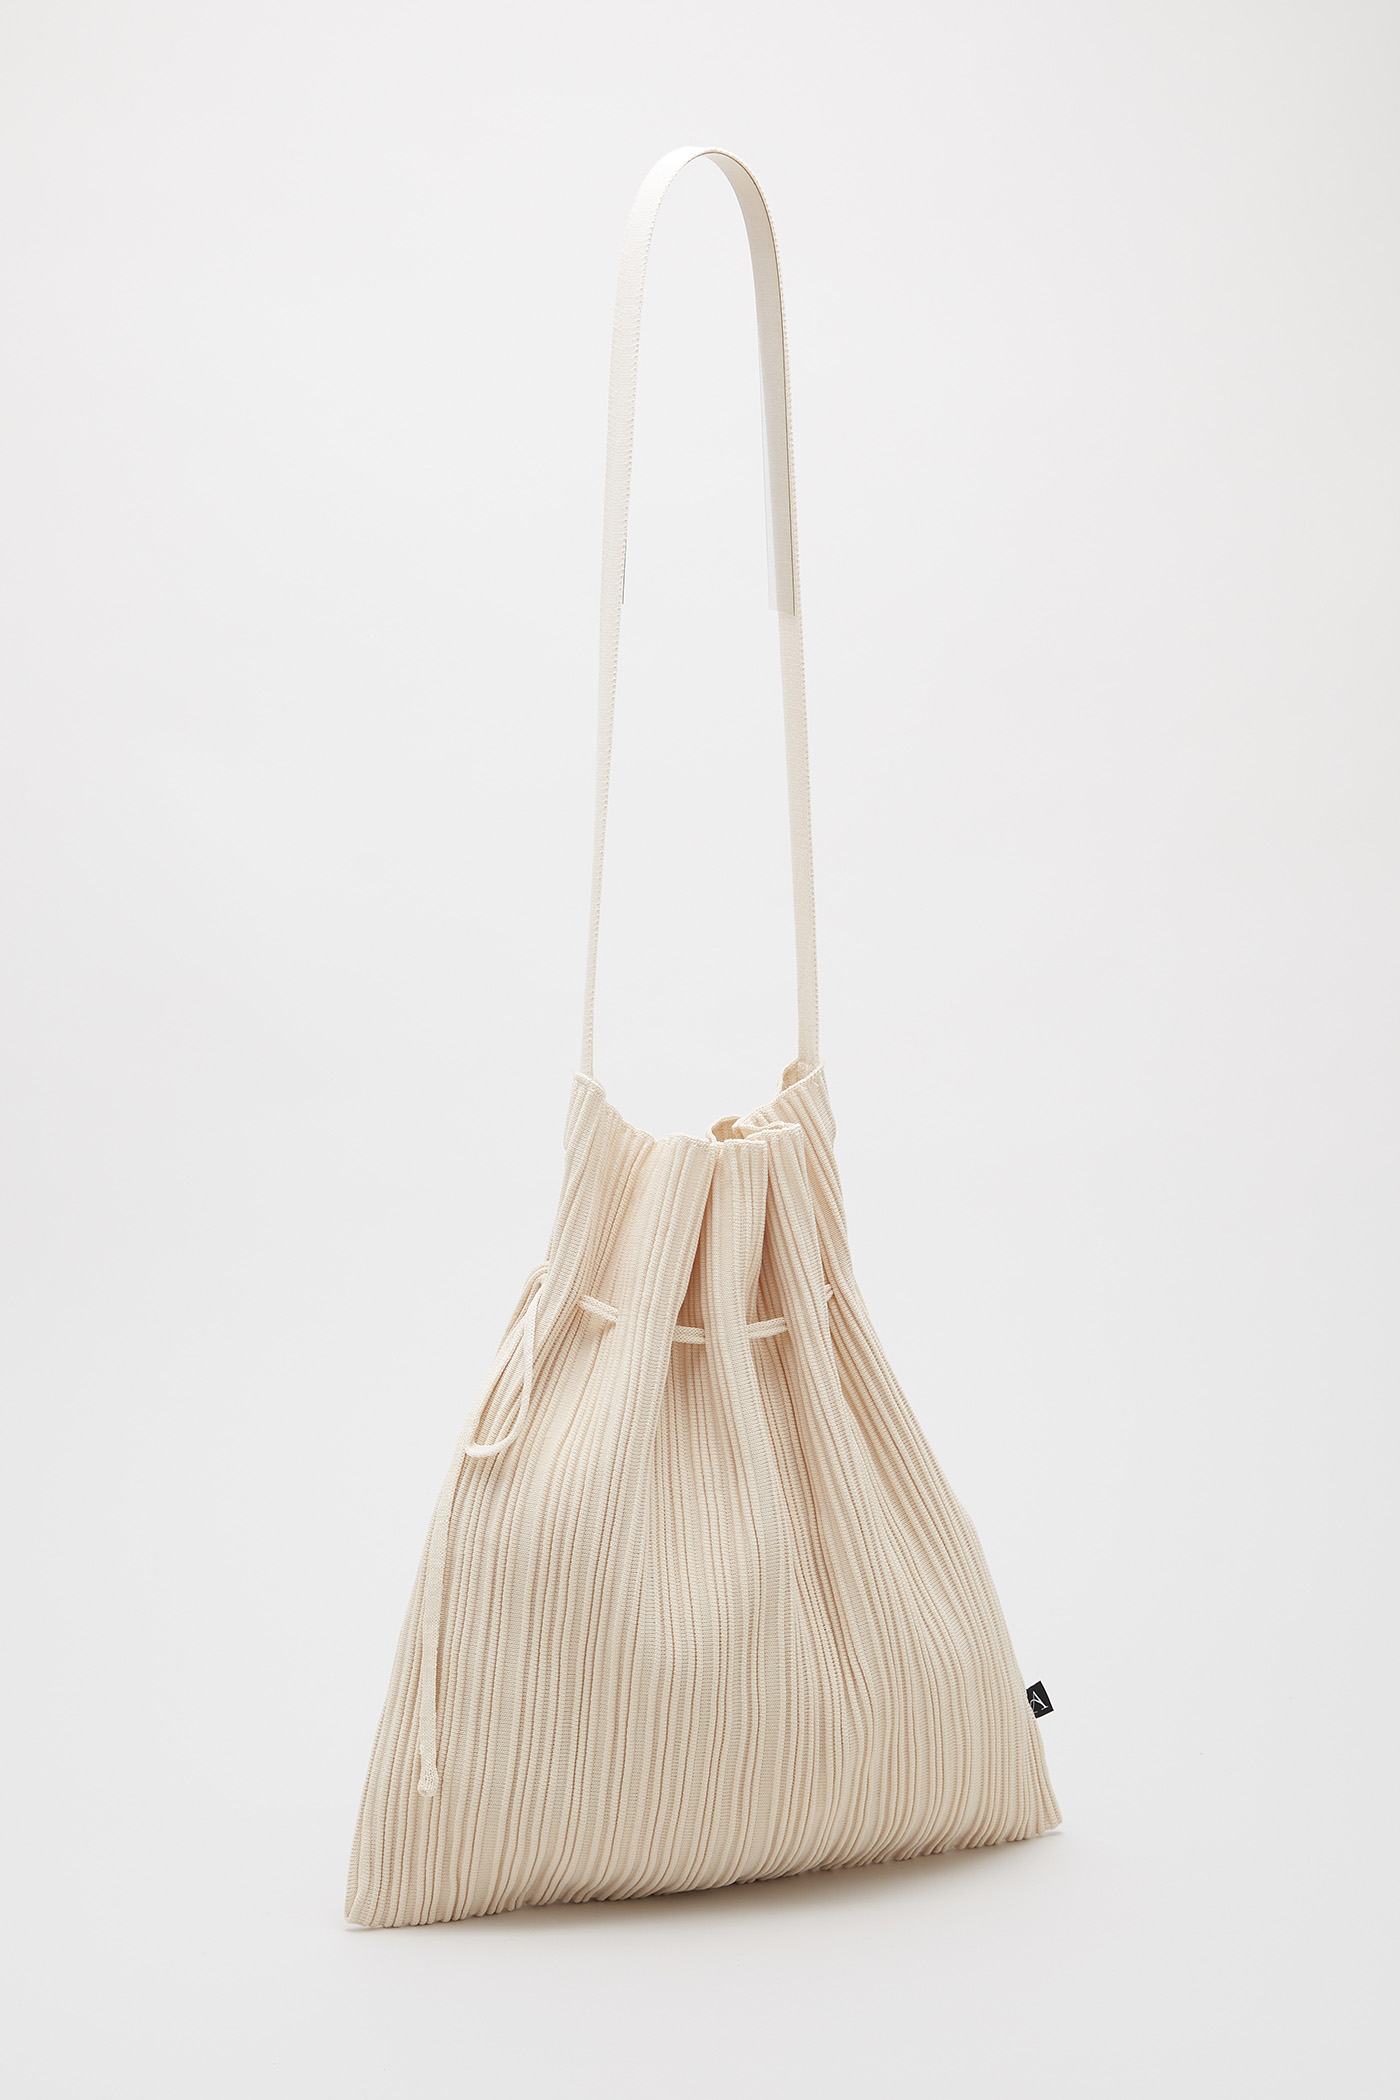 The Knit Sling